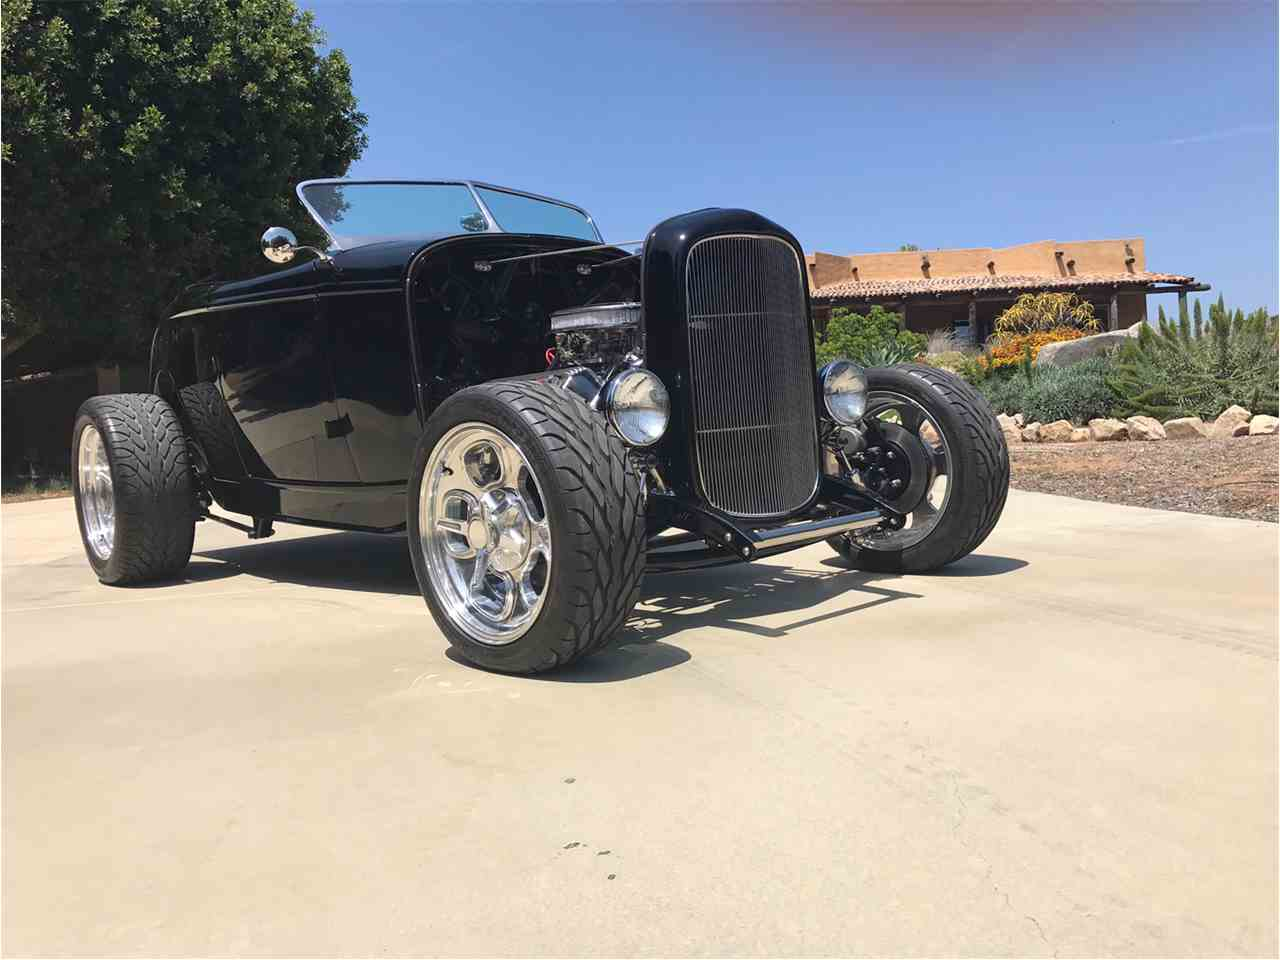 Large Picture of '32 Ford Roadster located in California - $43,500.00 Offered by Classic Car Marketing, Inc. - L424